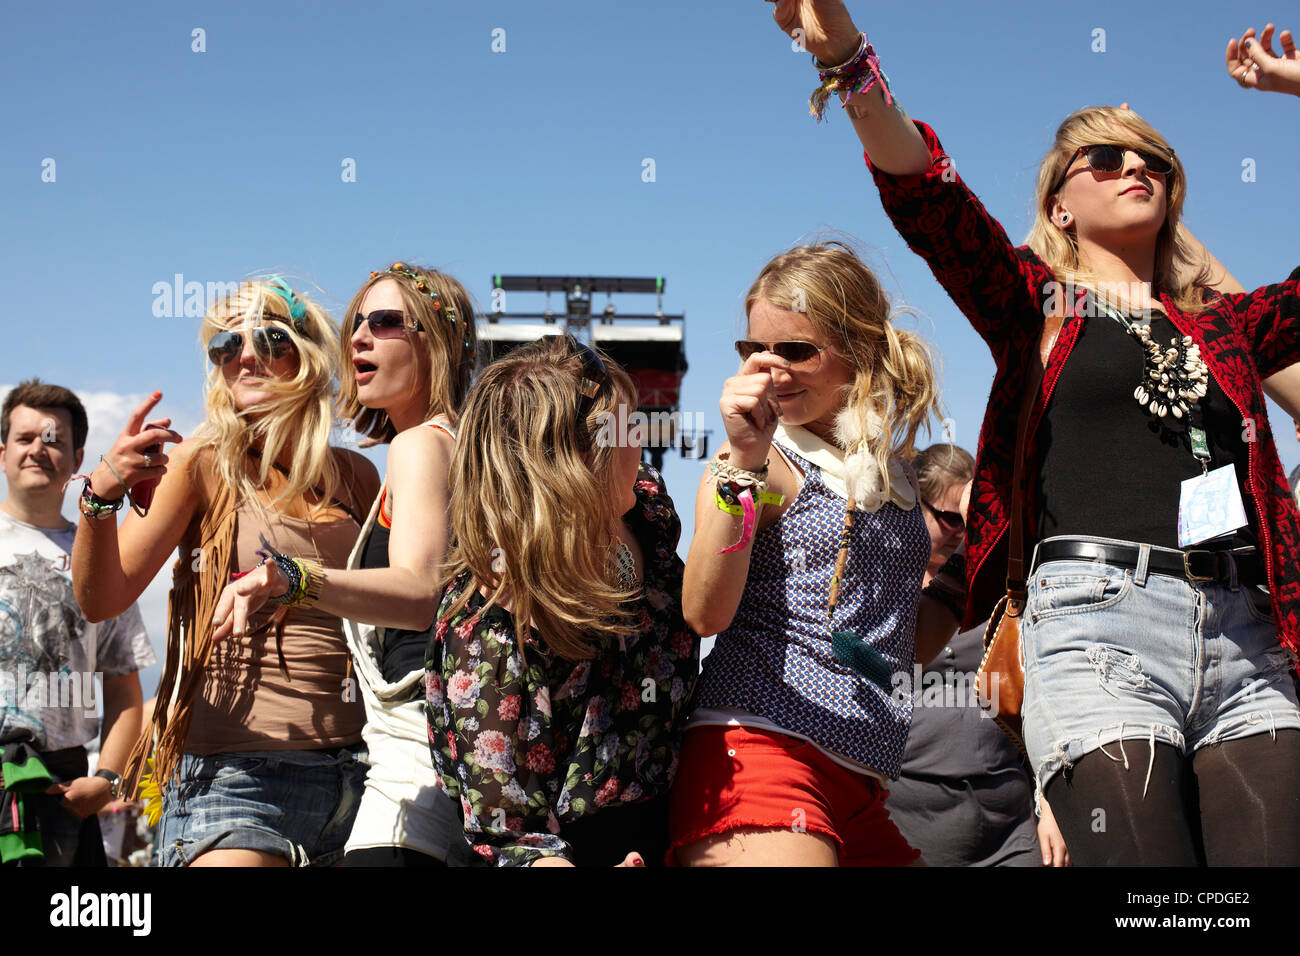 Girls cheering hysterically at a gig at a music festival - Stock Image